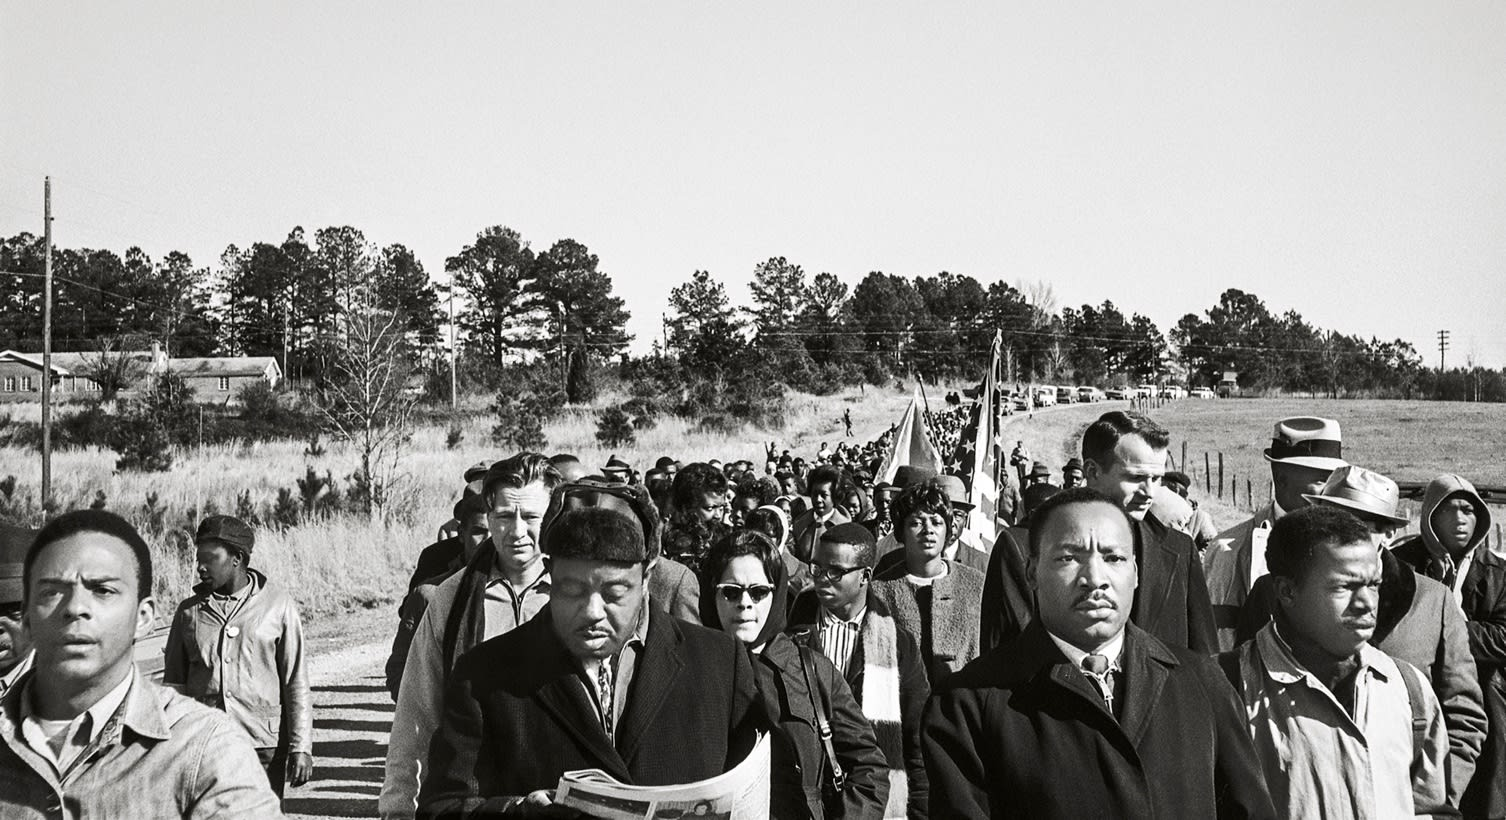 Steve Schapiro Start of the Selma March, 1965